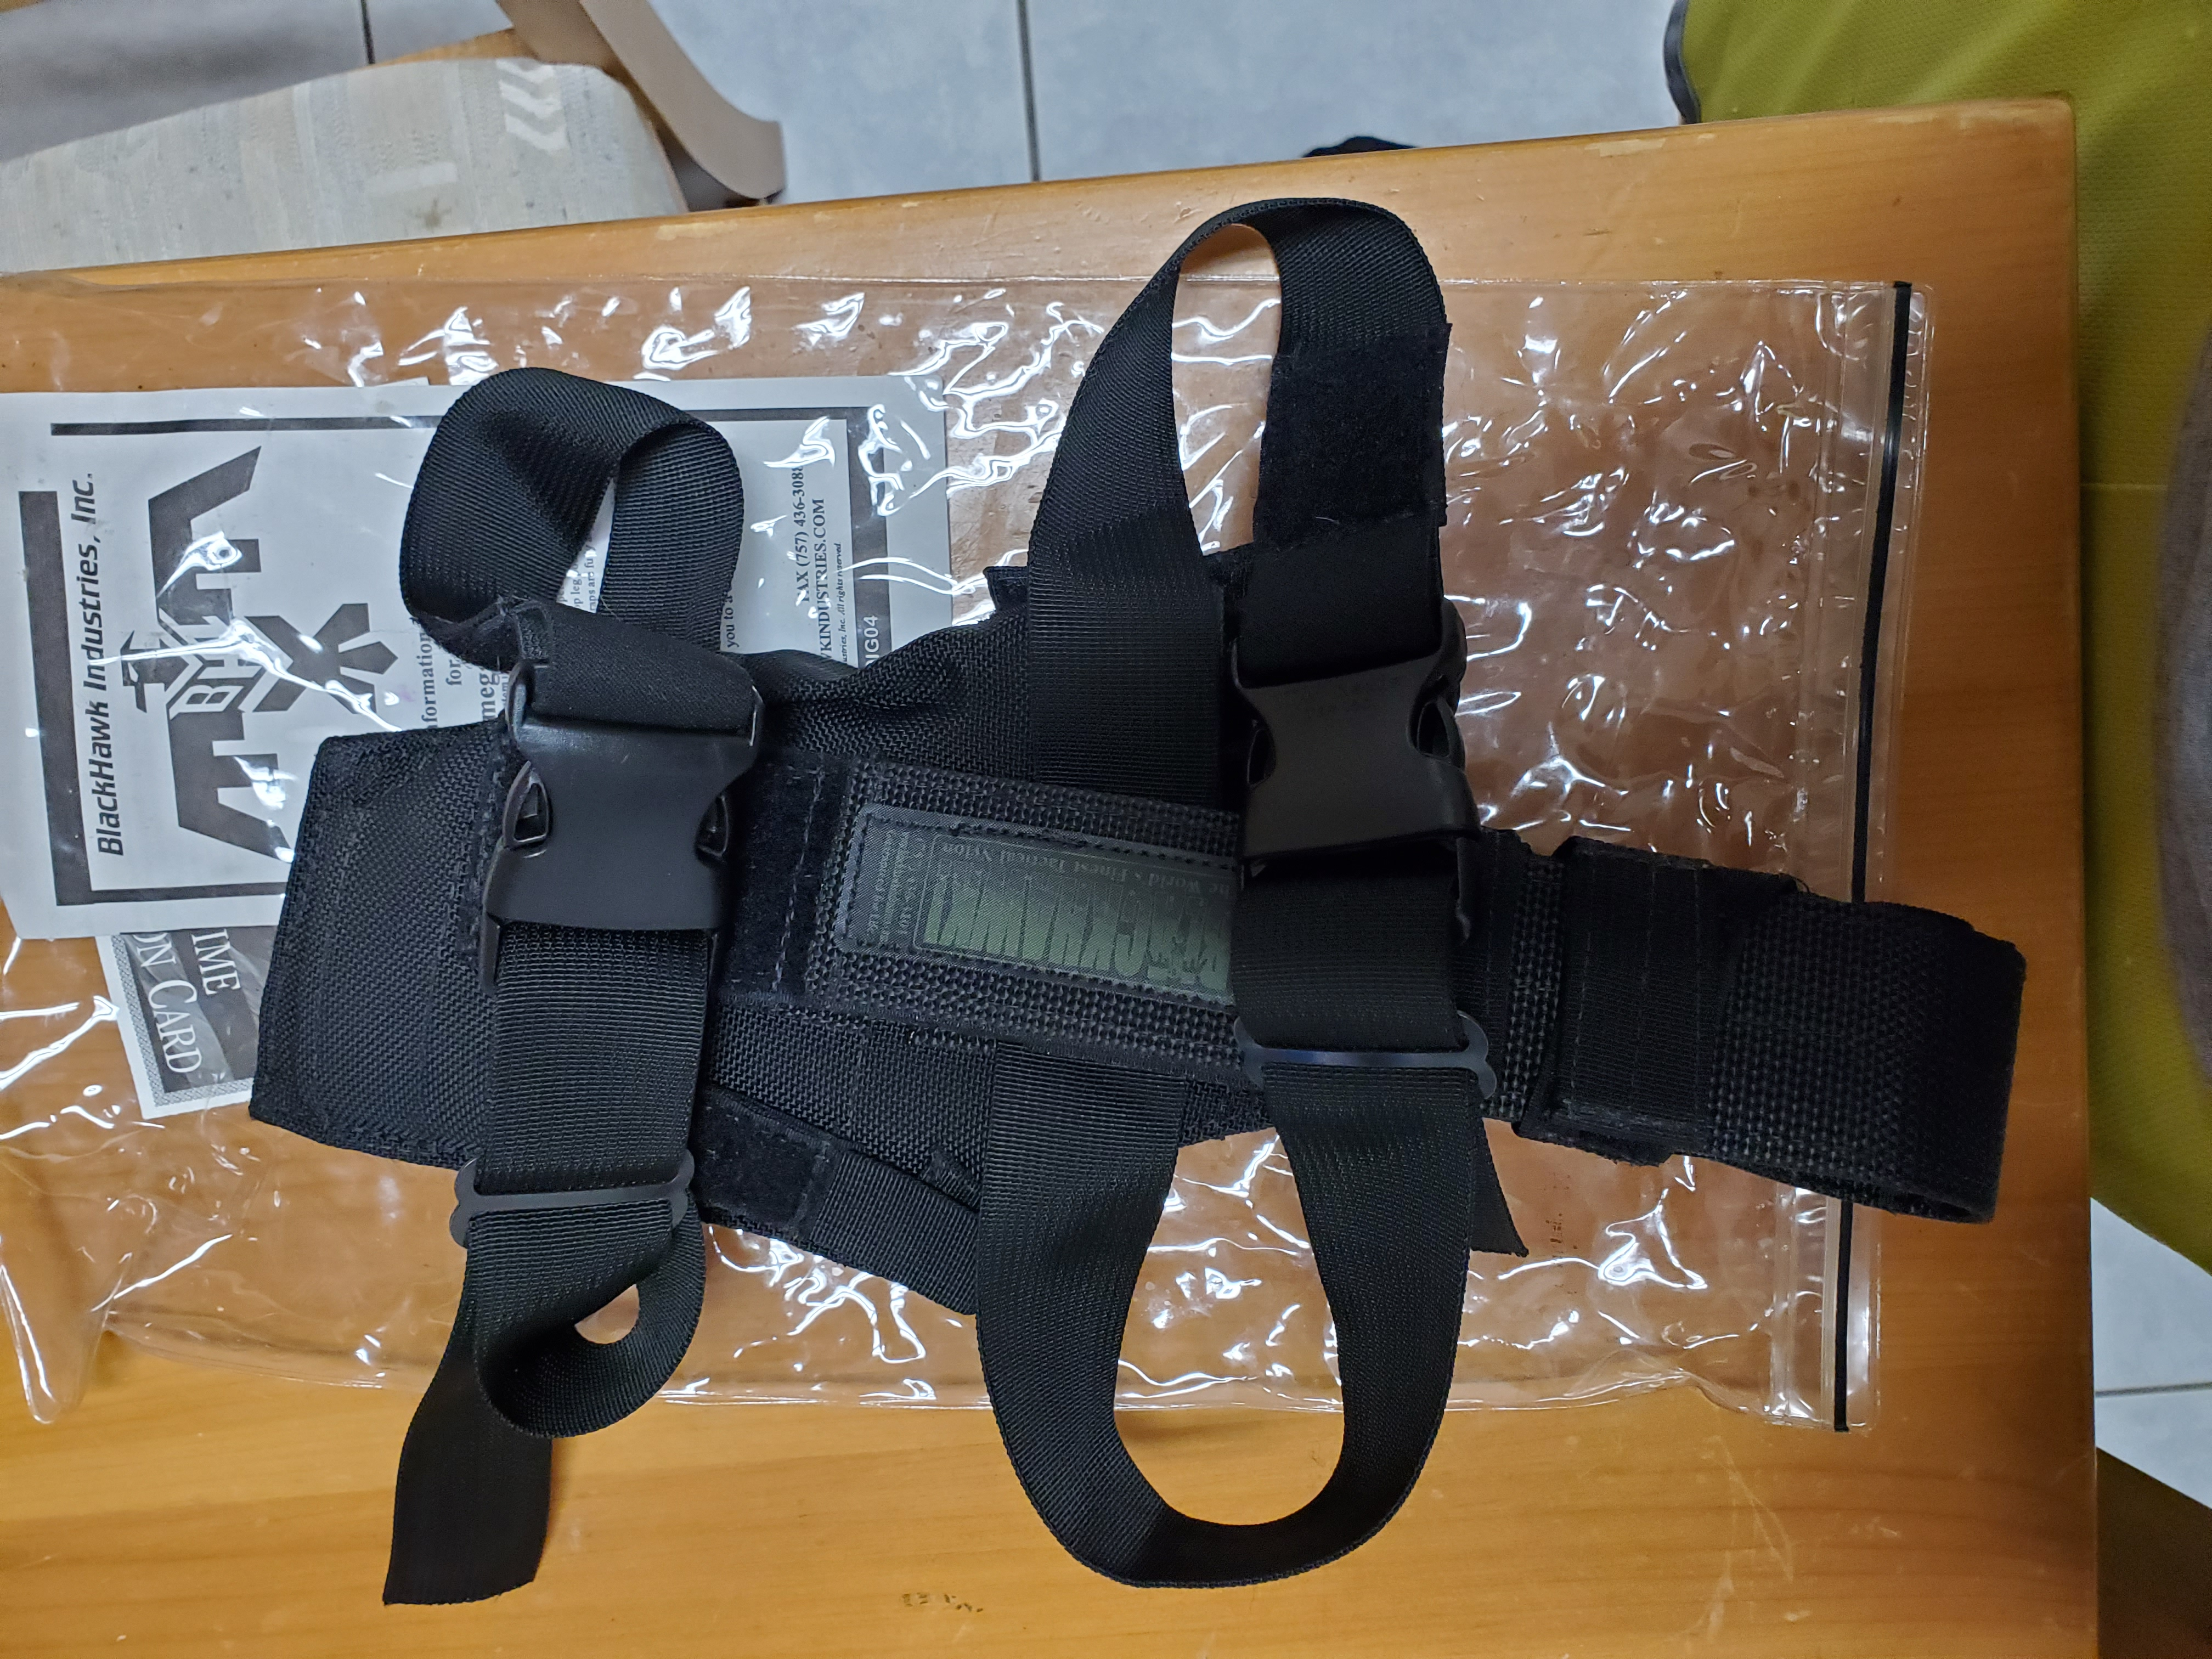 Hk Mark 23 inside a eagle USP drop leg holster?-20191205_220626_1575601987611.jpg